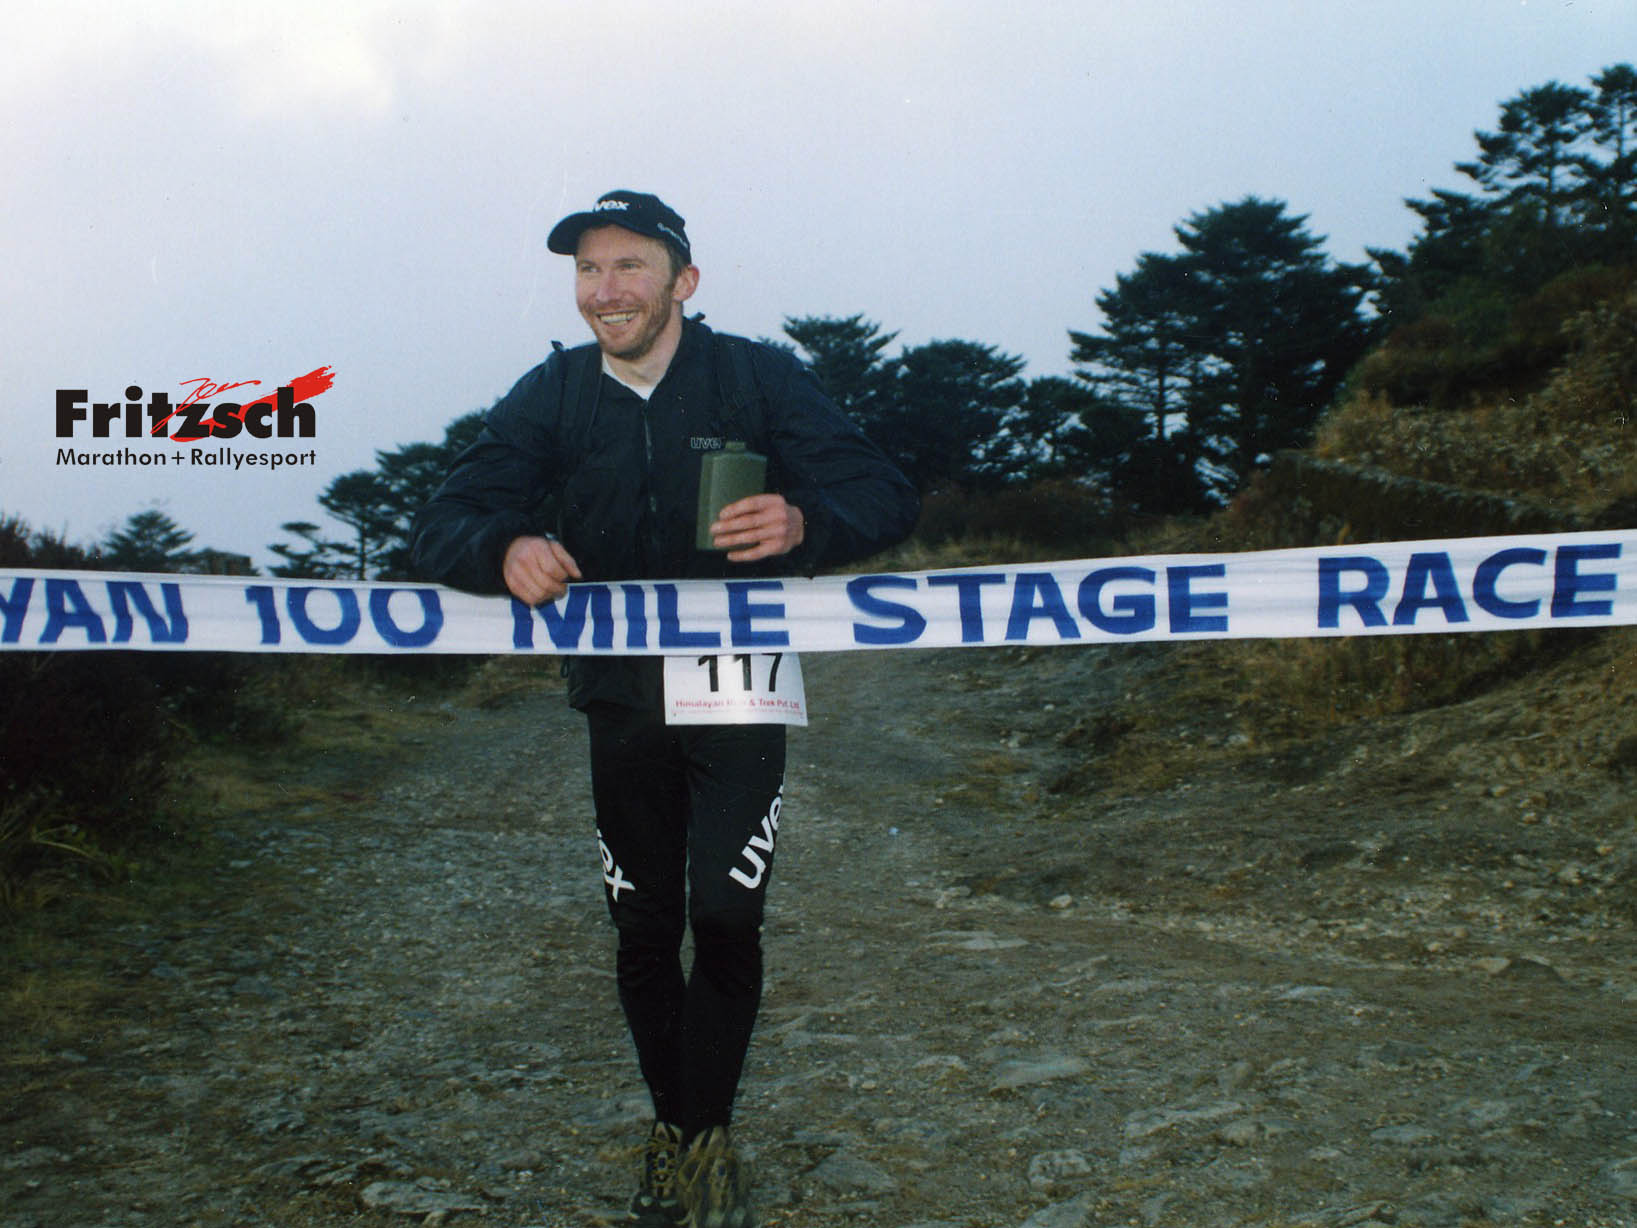 Himalayan Stage Race Ultra marathon in the Himalayan mountains